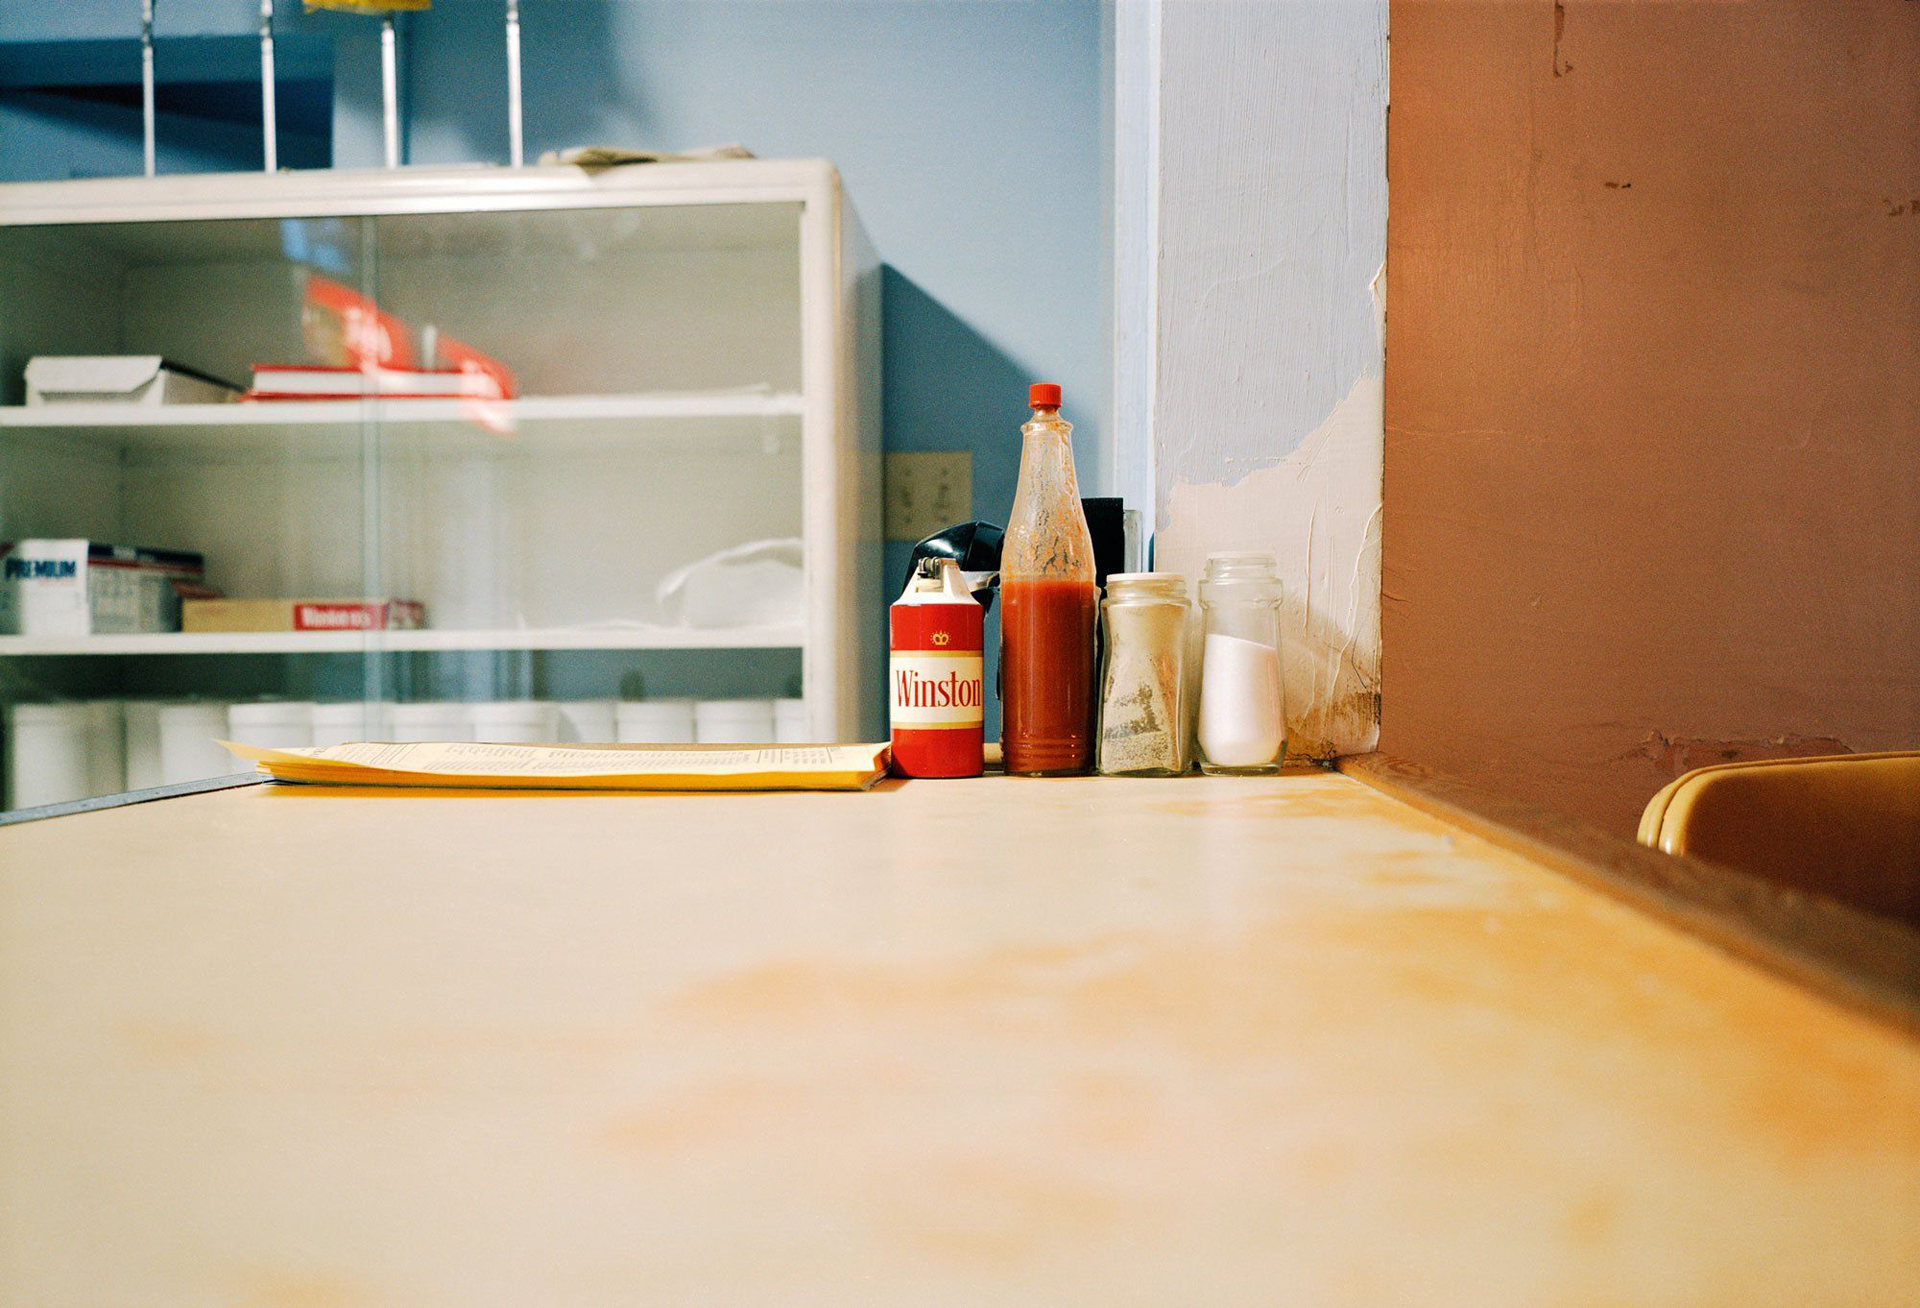 eggleston-1983-1986-s-TheDemocraticForest-ketchup